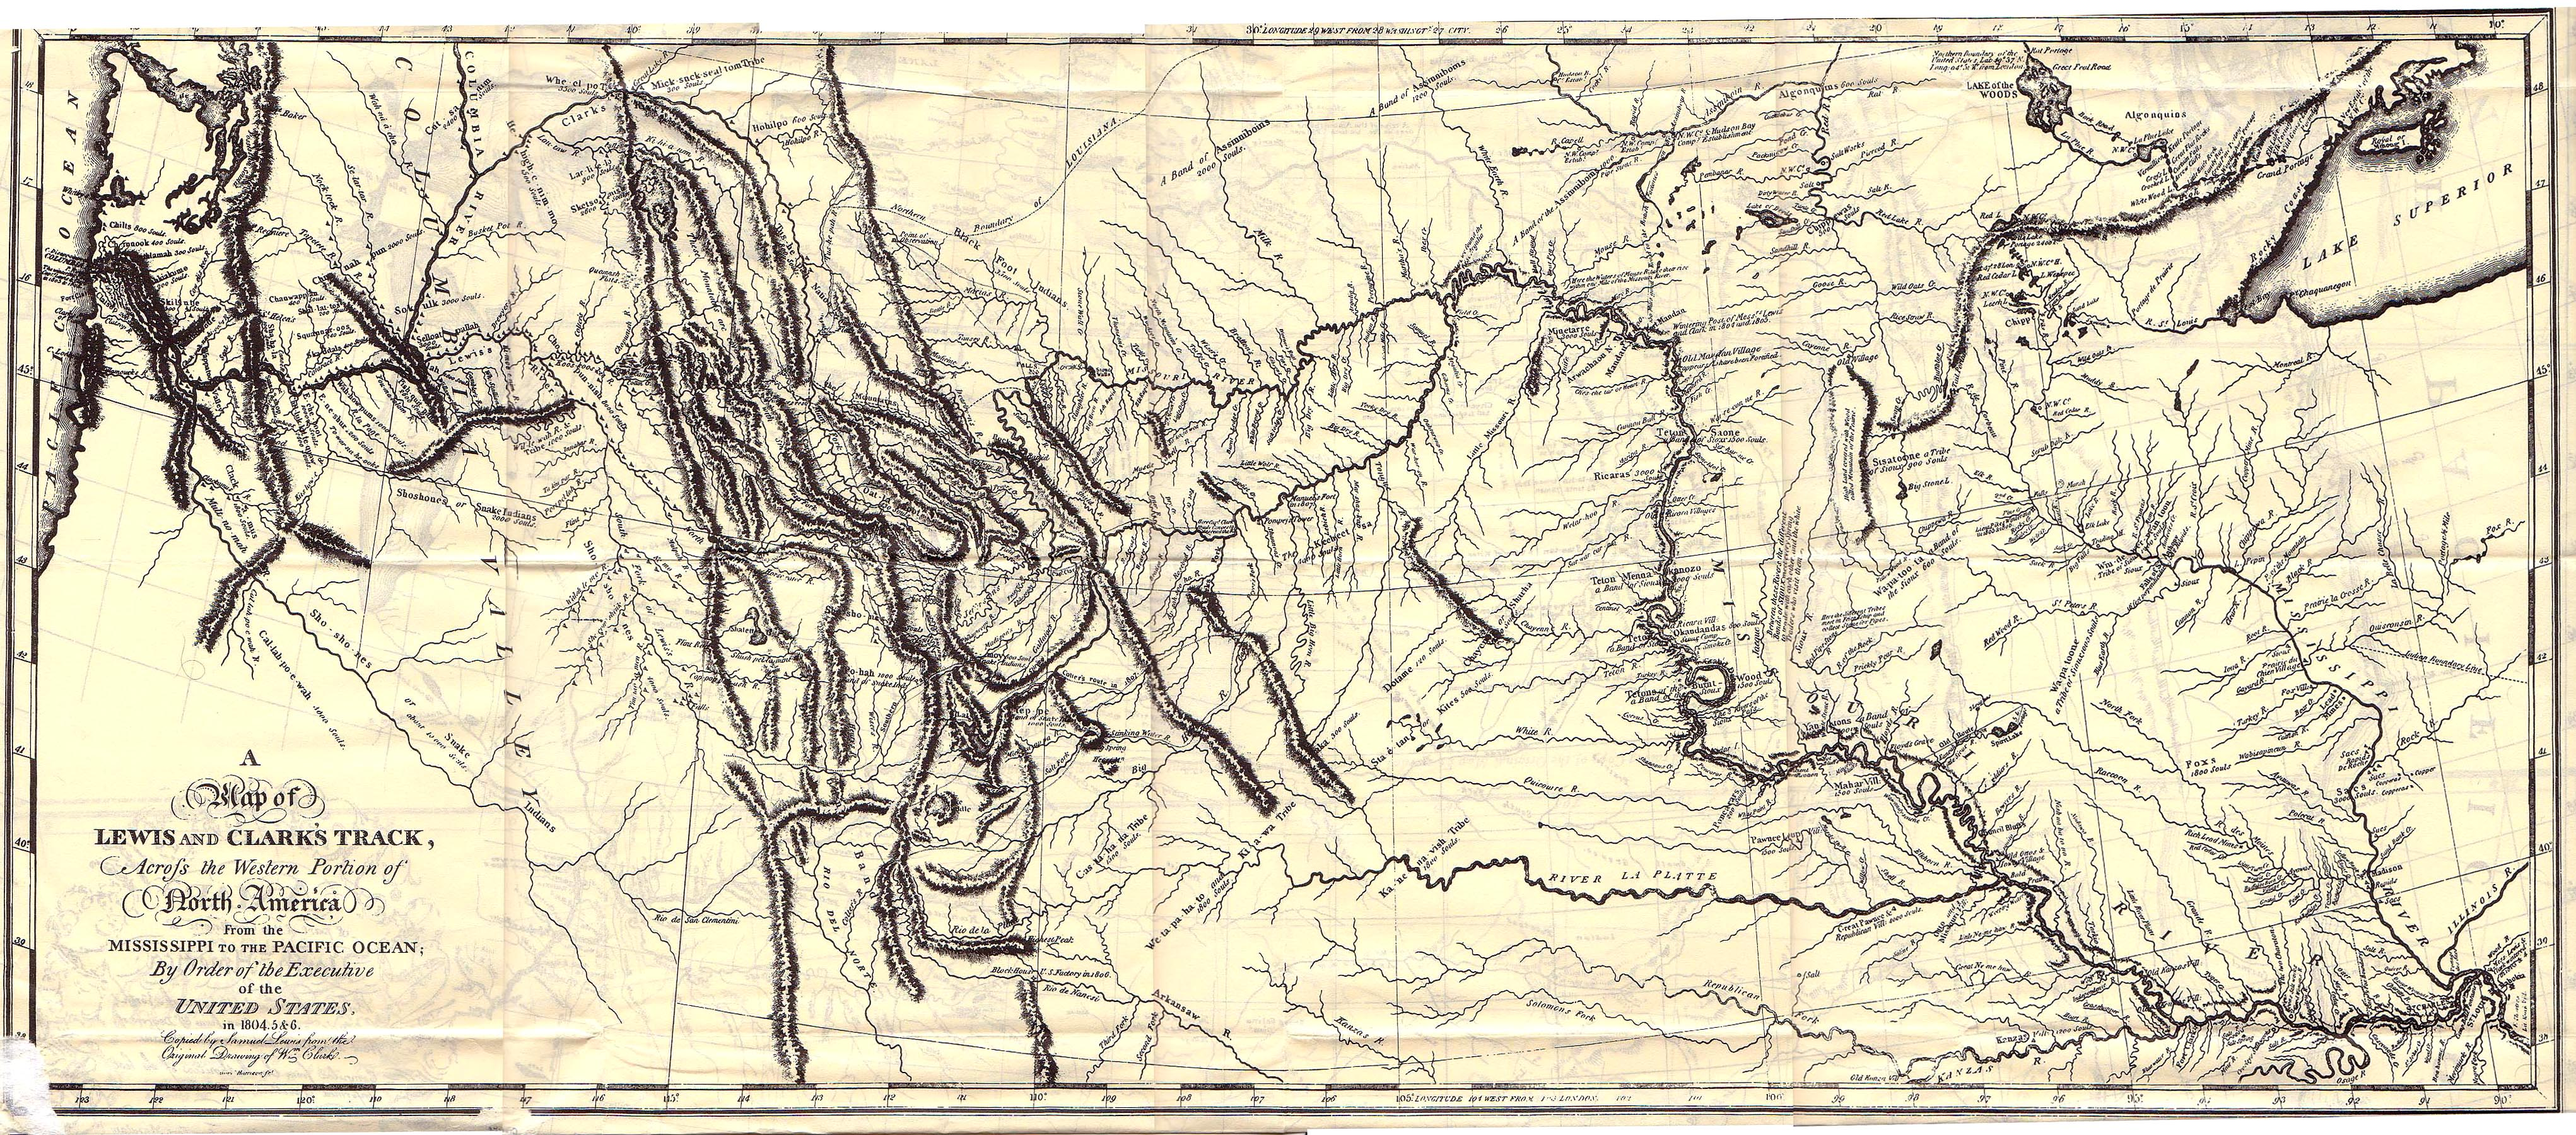 W Clark S Map As Published In Biddle S Edition Of The Lewis And Clark Journals 1814 About 2mb